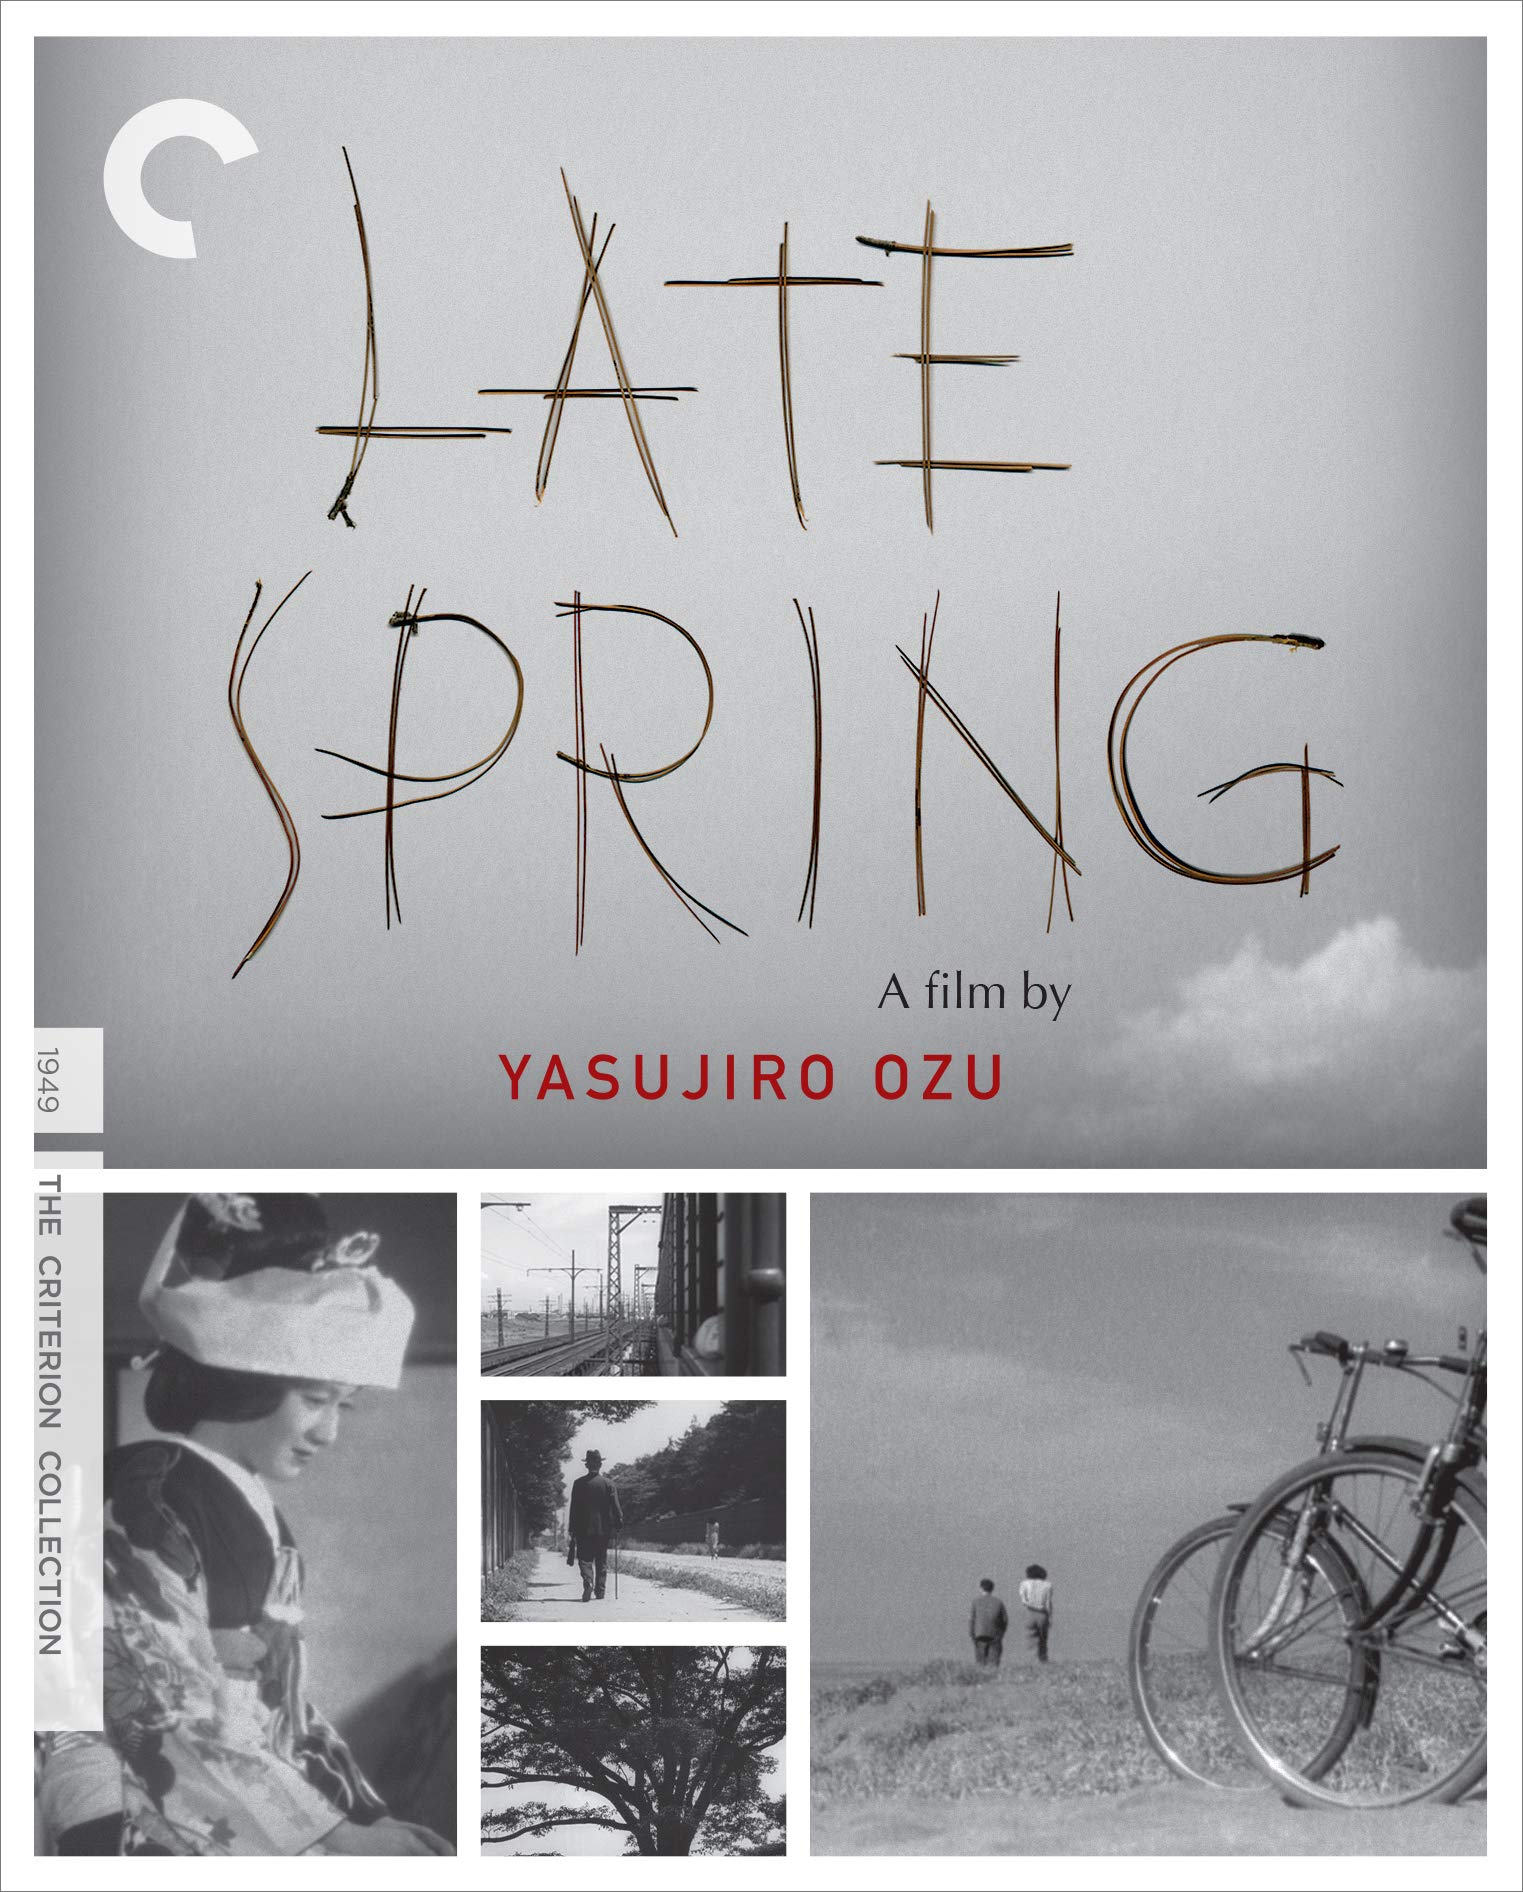 Late Spring (The Criterion Collection) [Blu-ray]